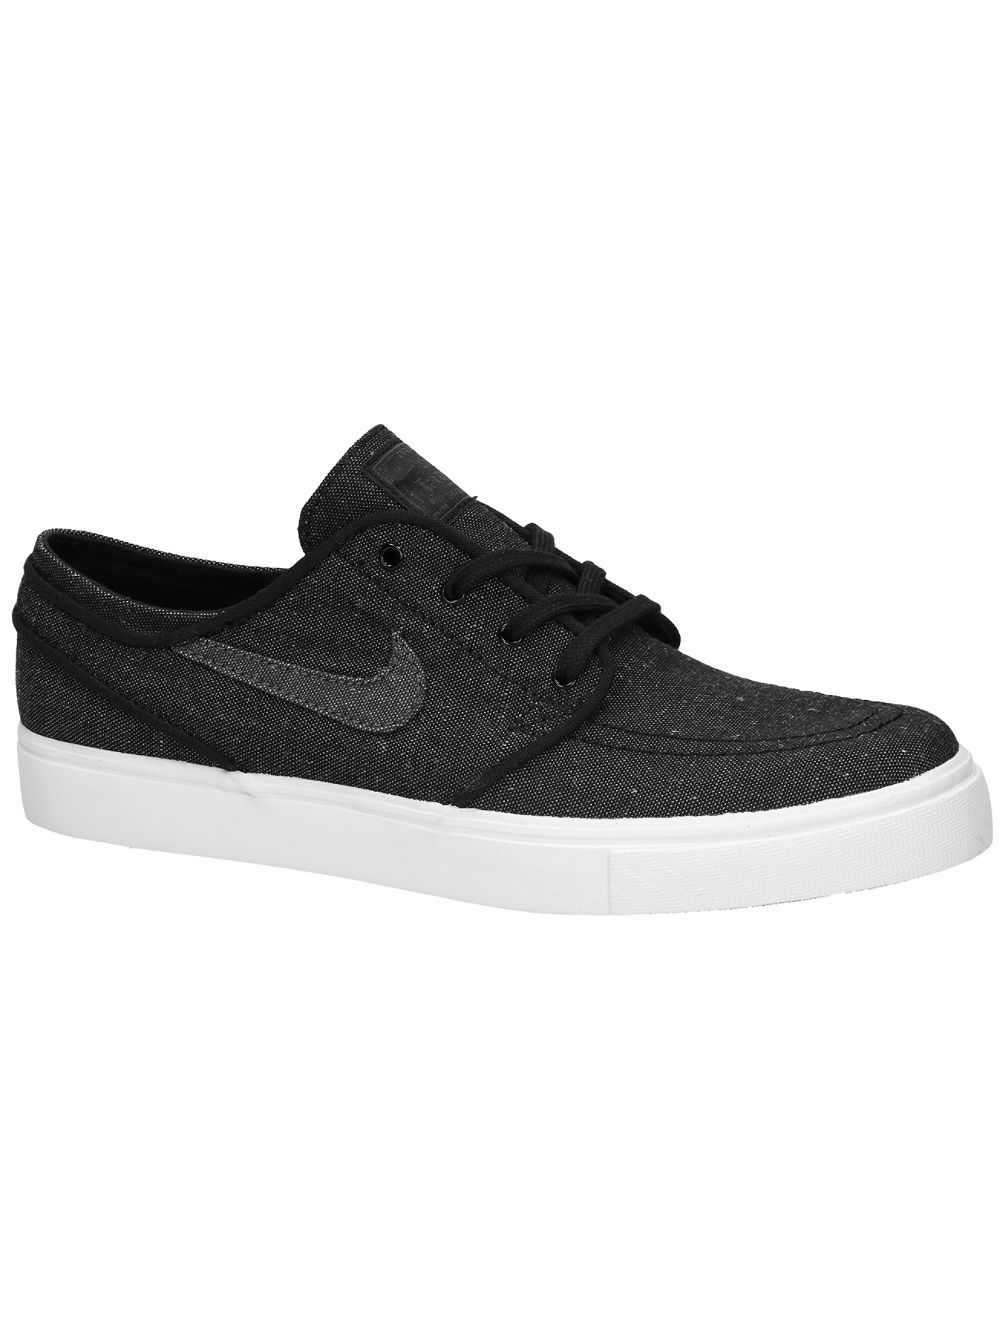 Zoom Stefan Janoski Canvas Deconstructed S S